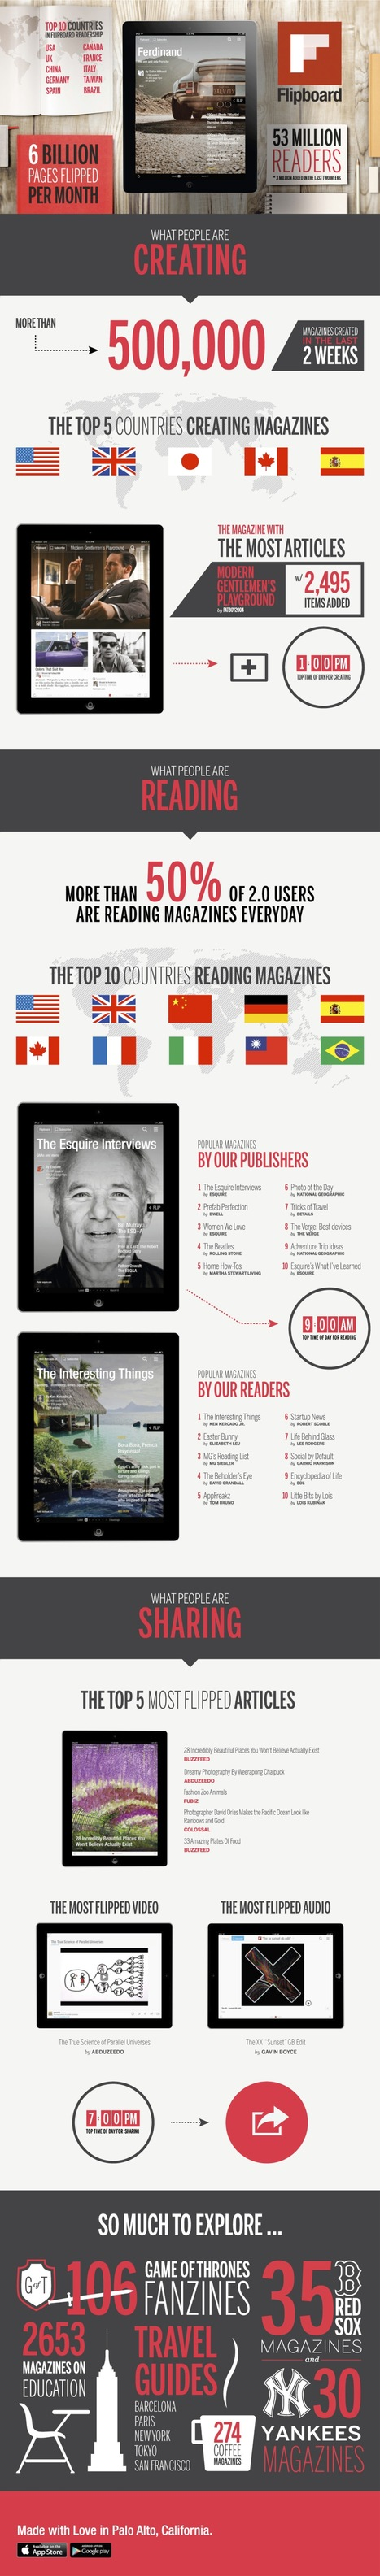 500,000 Flipboard magazines created in 2 weeks (Infographic) | AtDotCom Social media | Scoop.it